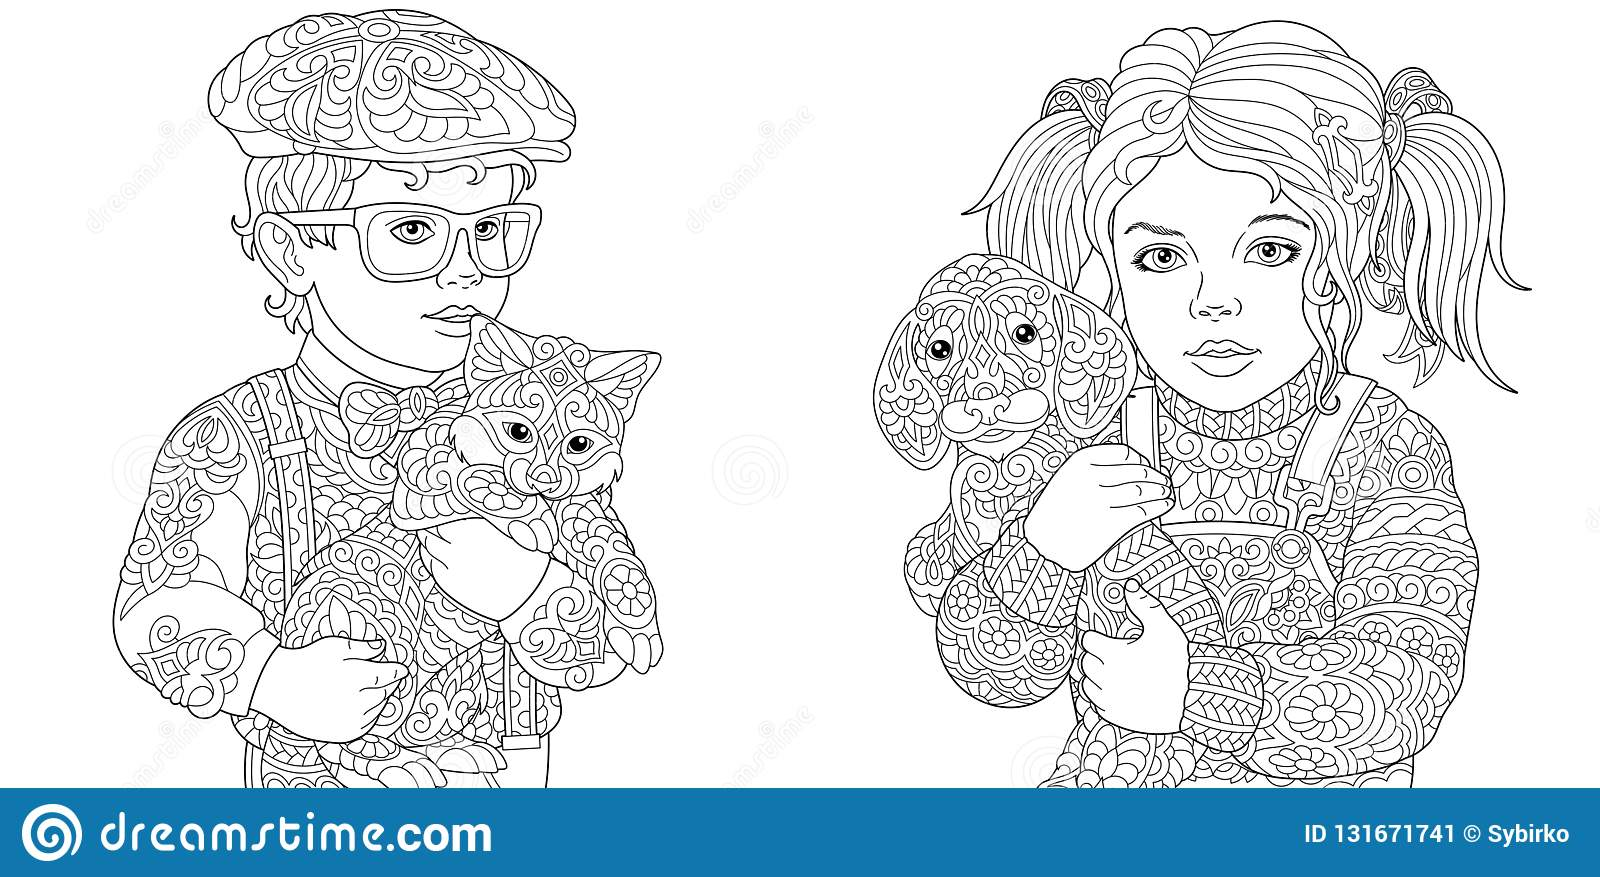 De-stress With Dogs: Downloadable 10 Page Coloring Book for Adults ... | 877x1600